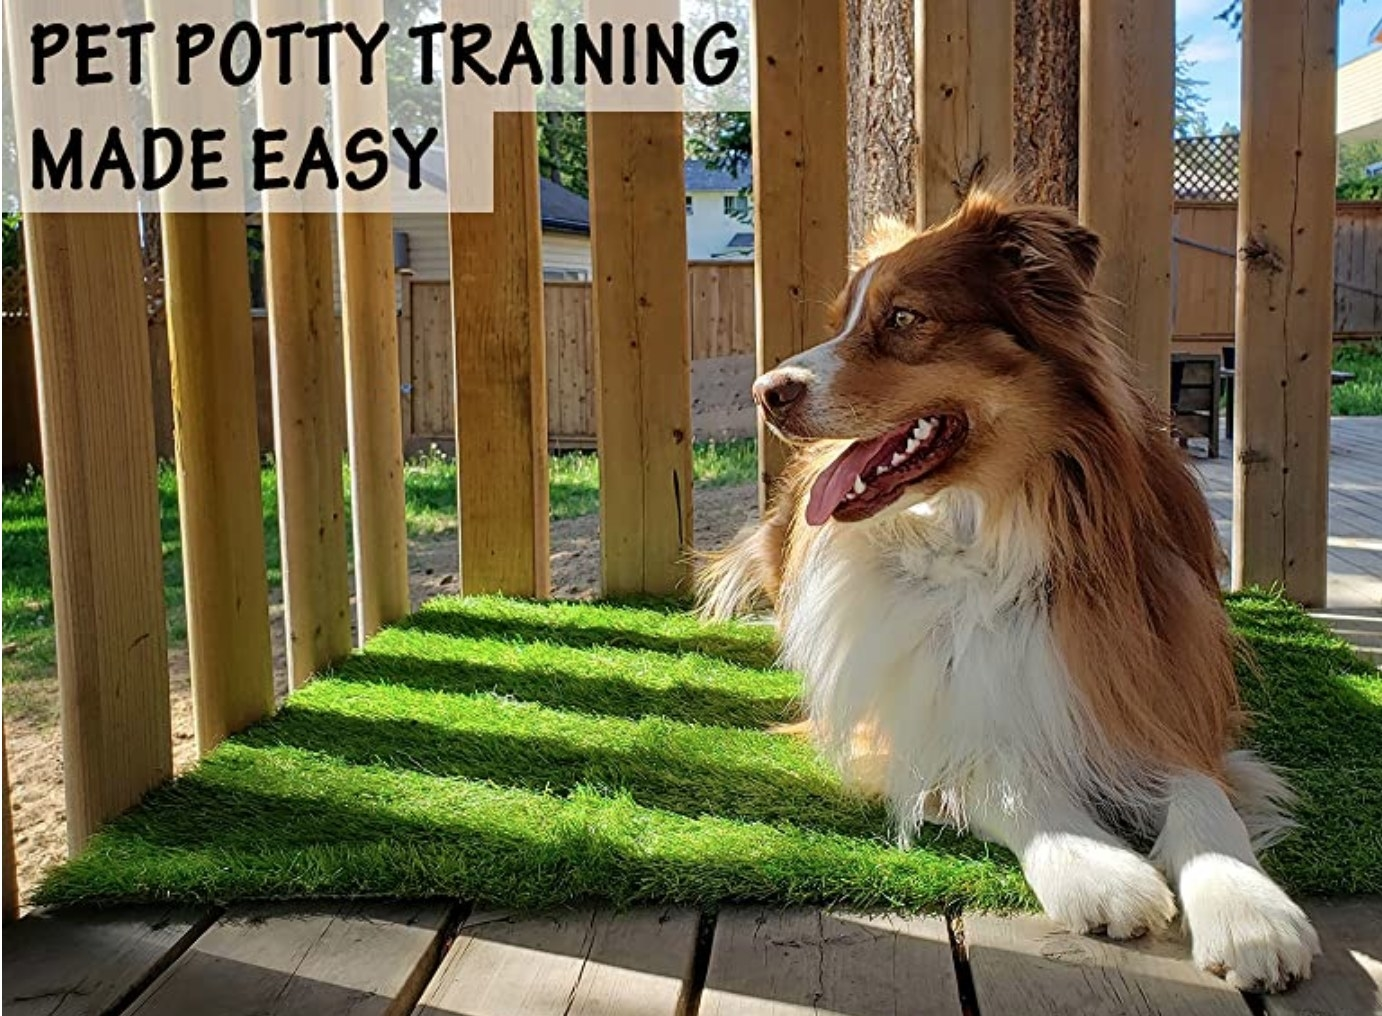 A dog on an artificial grass patch being used as a training pad outdoors on a patio